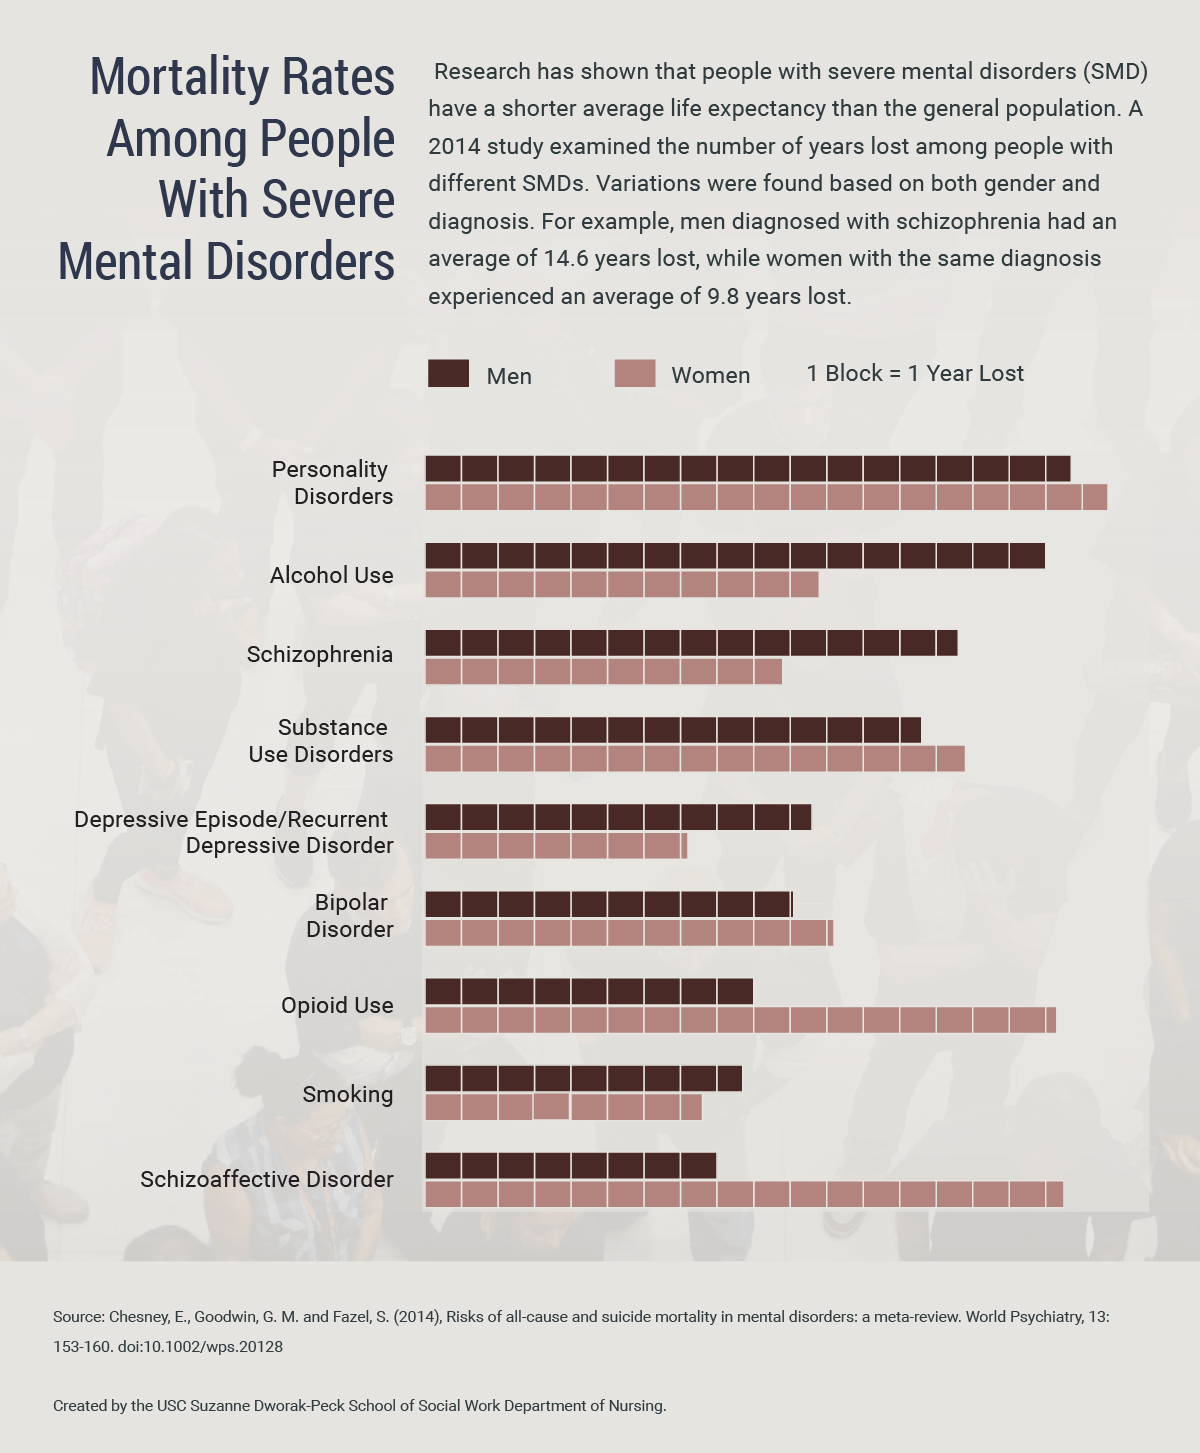 Chart comparing mortality rates among people with severe mental health disorders.